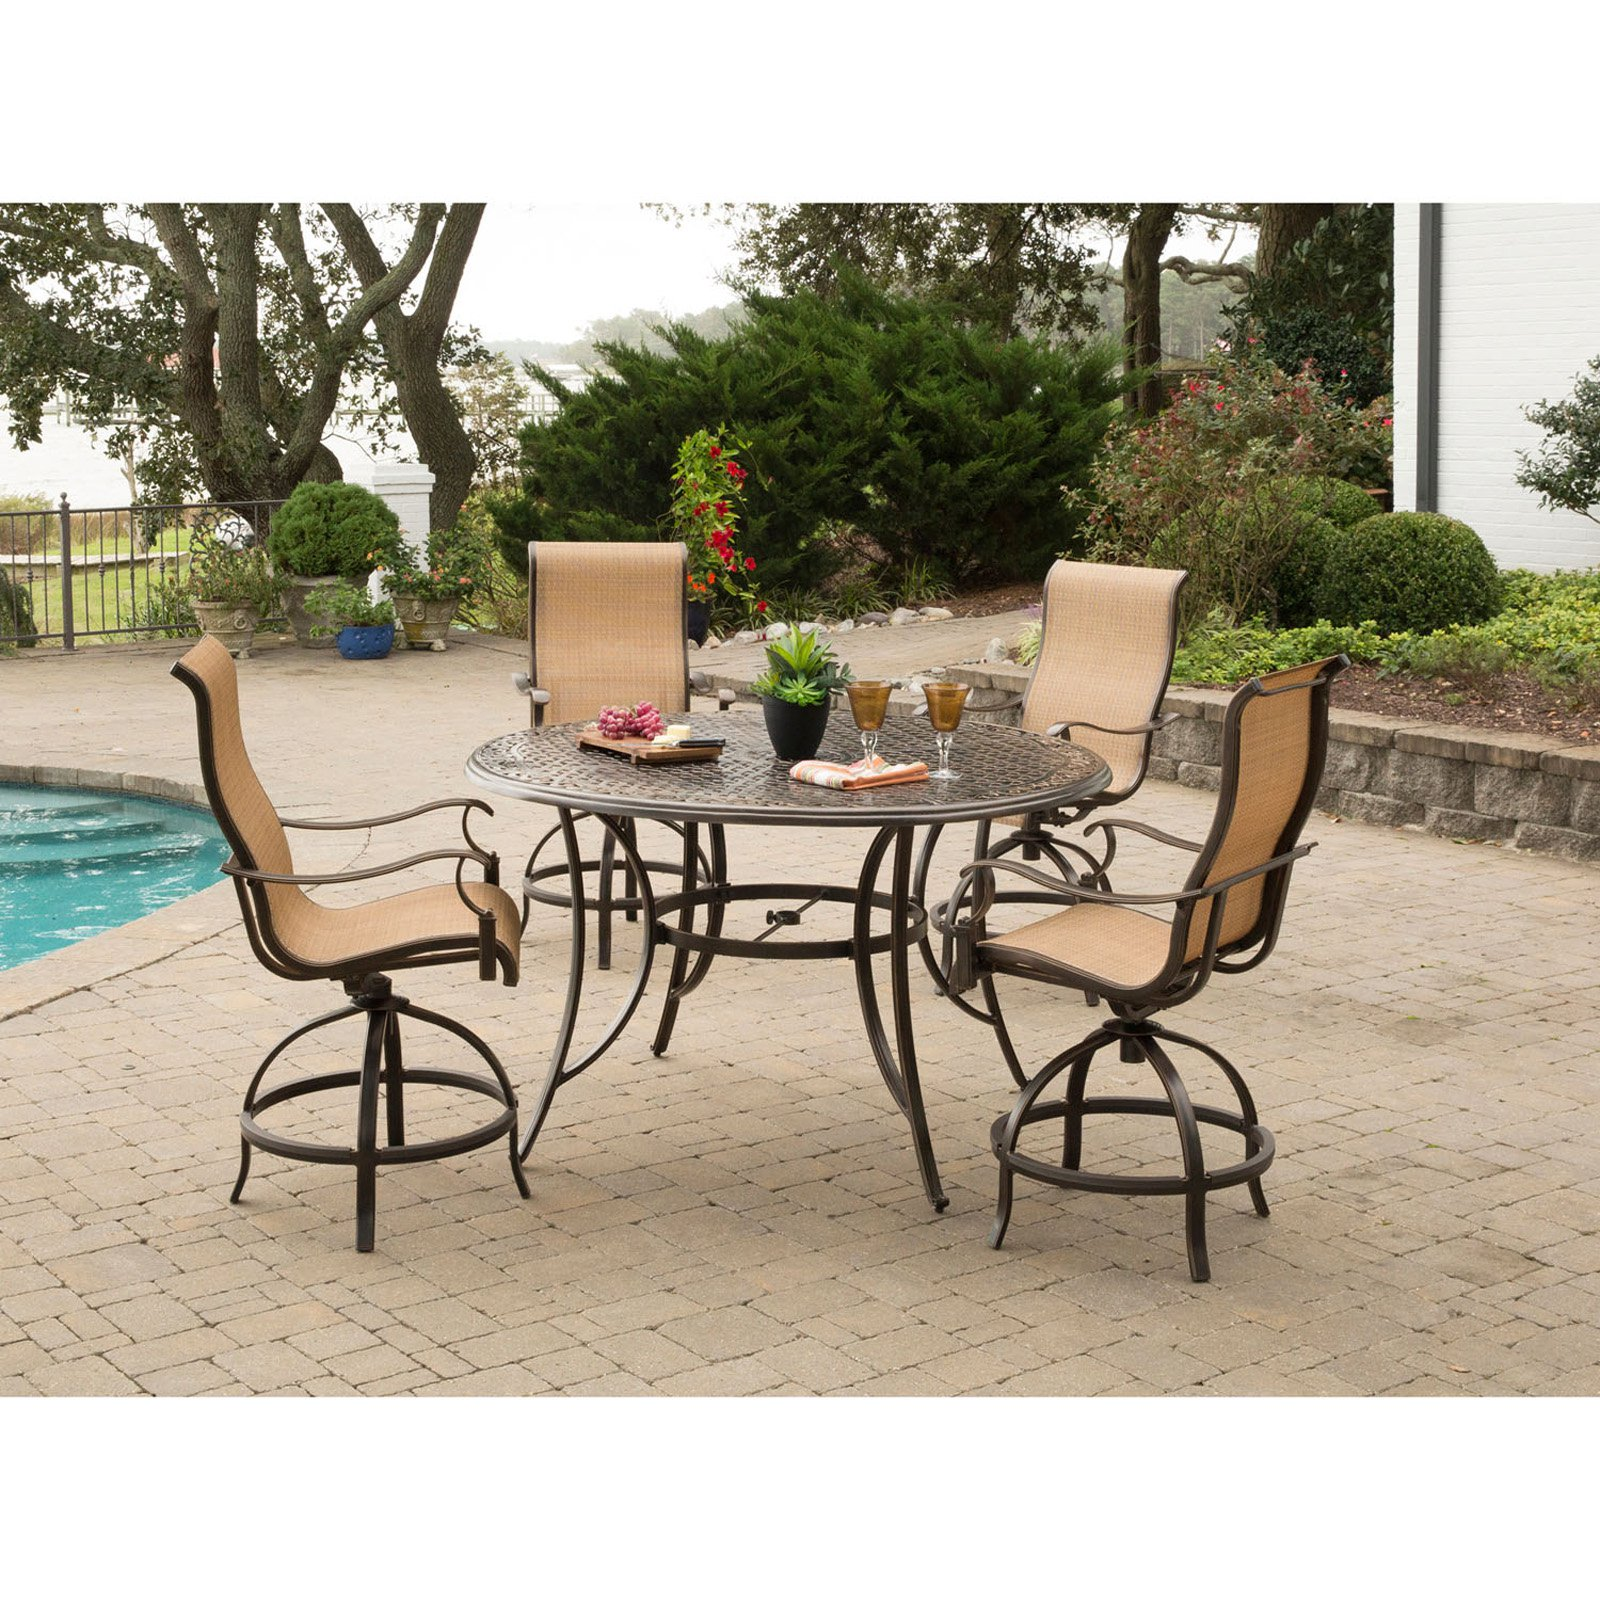 Hanover Manor 5-Piece Outdoor High-Dining Bar Set